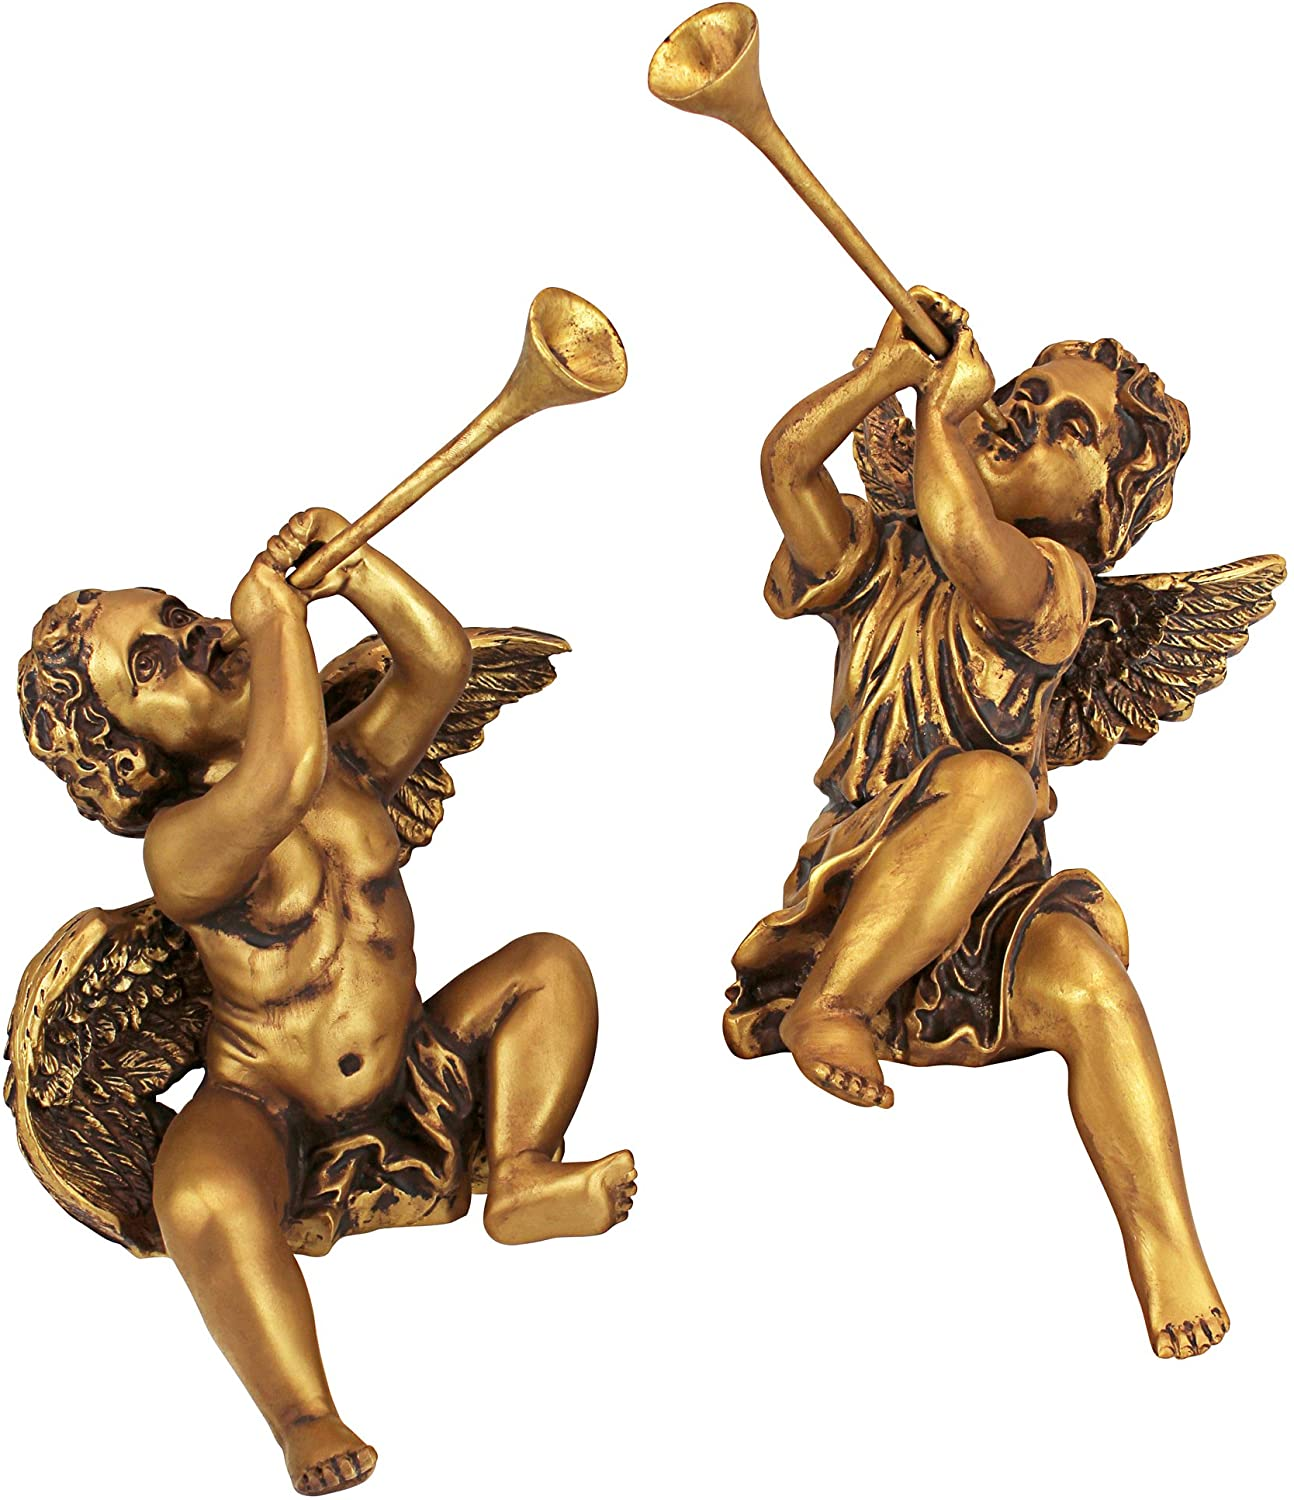 Design Toscano Christmas Decorations-Trumpeting Boy and Girl of St. Peters Square - Holiday Angel Statue, Gold